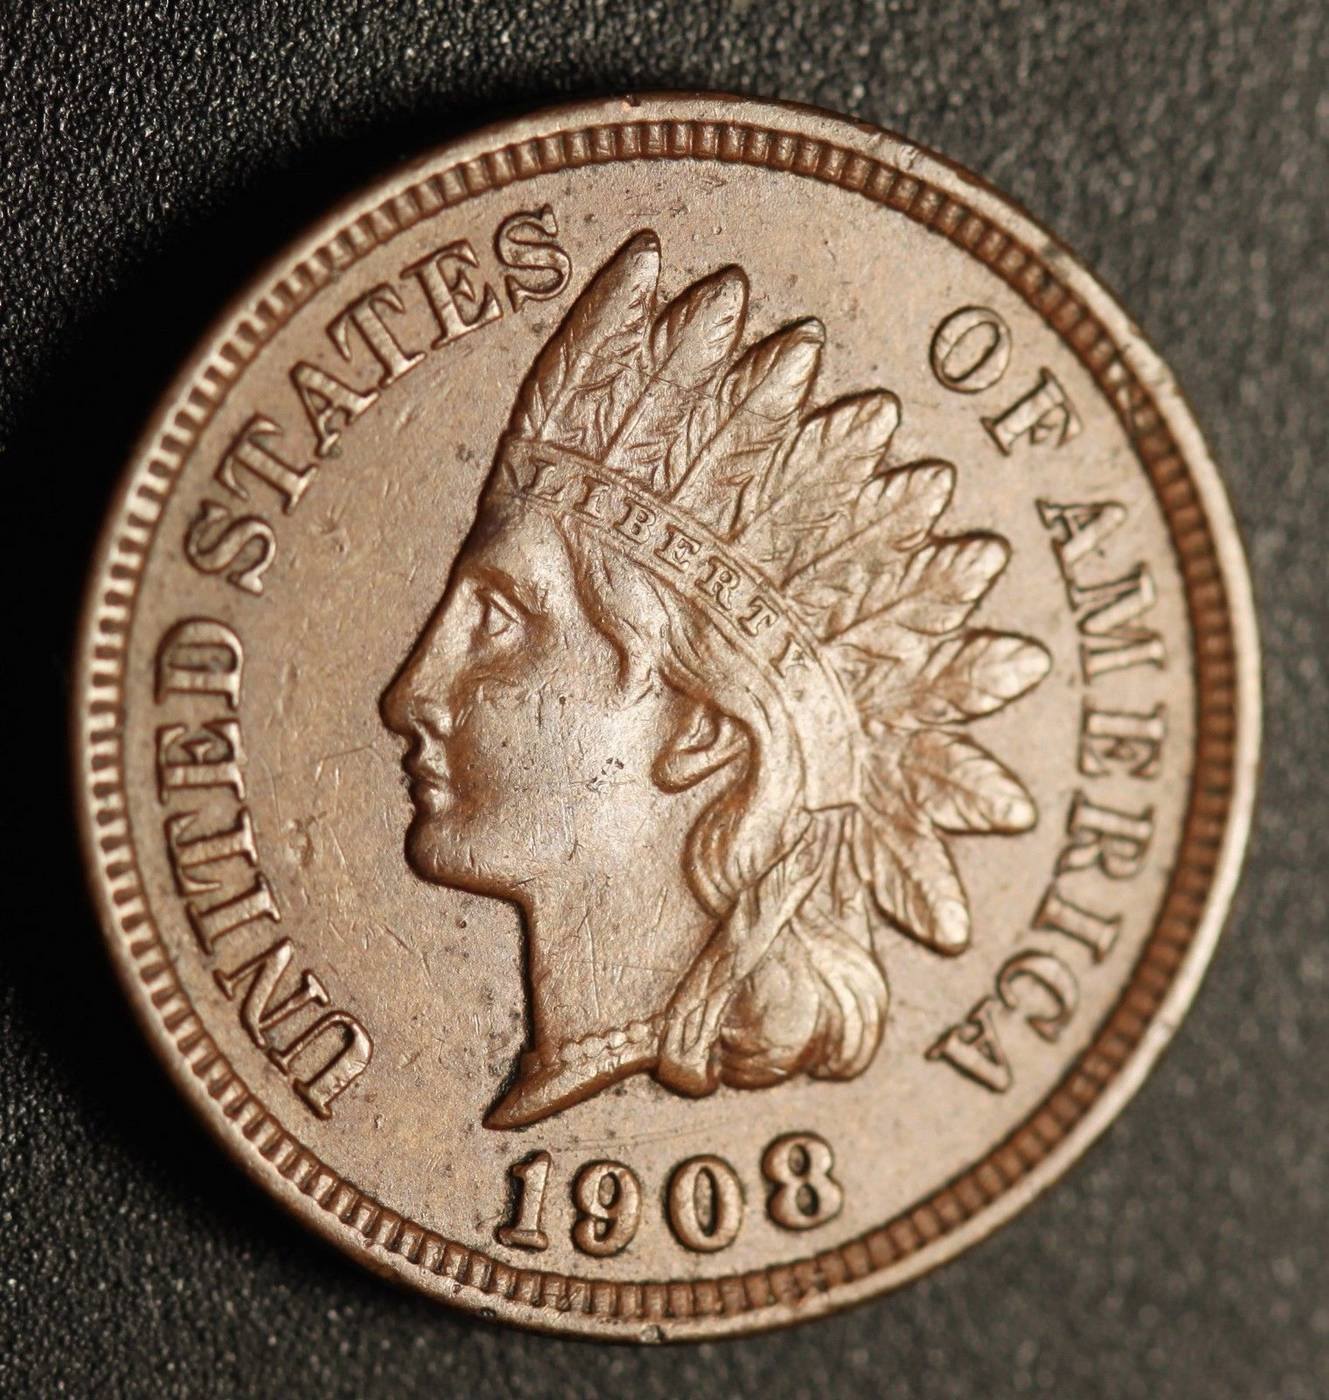 1908 RPD-017 - Indian Head Penny - Photo by Ed Nathanson